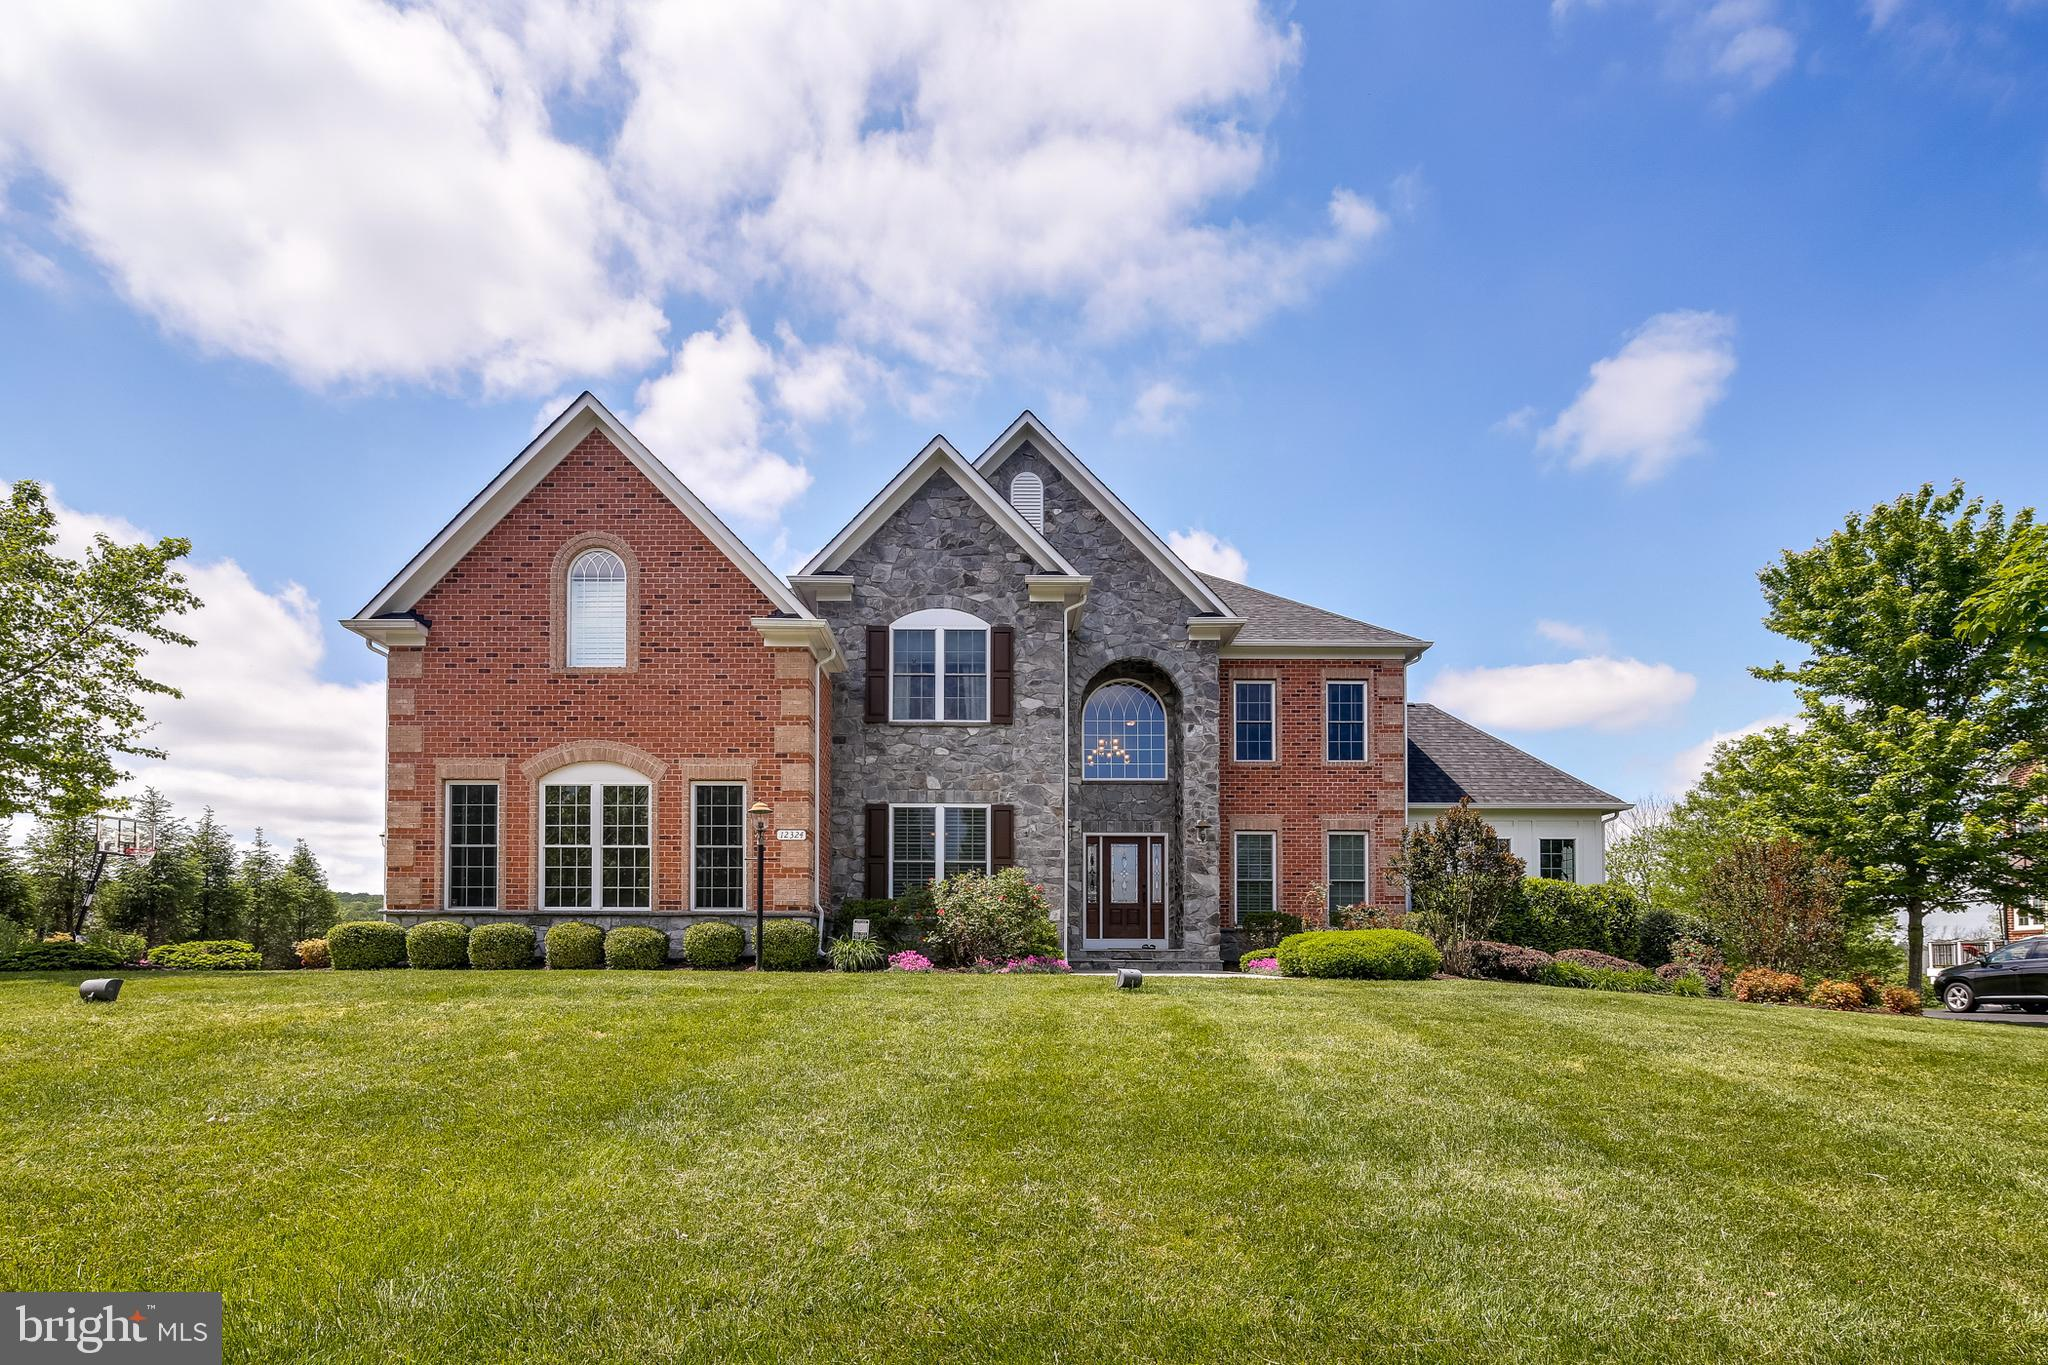 Fall in love with this absolutely spectacular former model home! This one-of-a-kind beauty begins wi